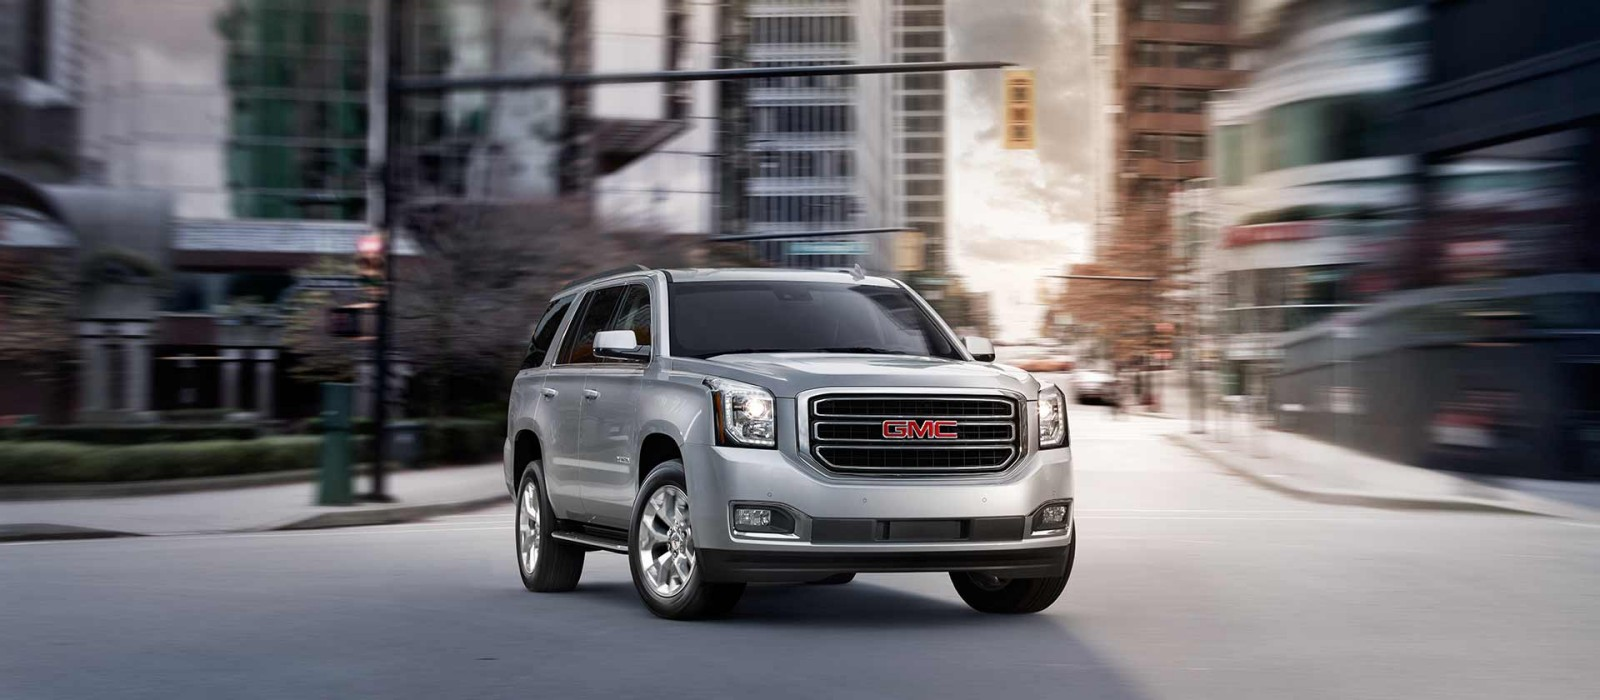 New GMC Yukon   Buy  Lease  or Finance   Gainesville  FL 32609 New 2018 GMC Yukon for Sale Gainesville FL